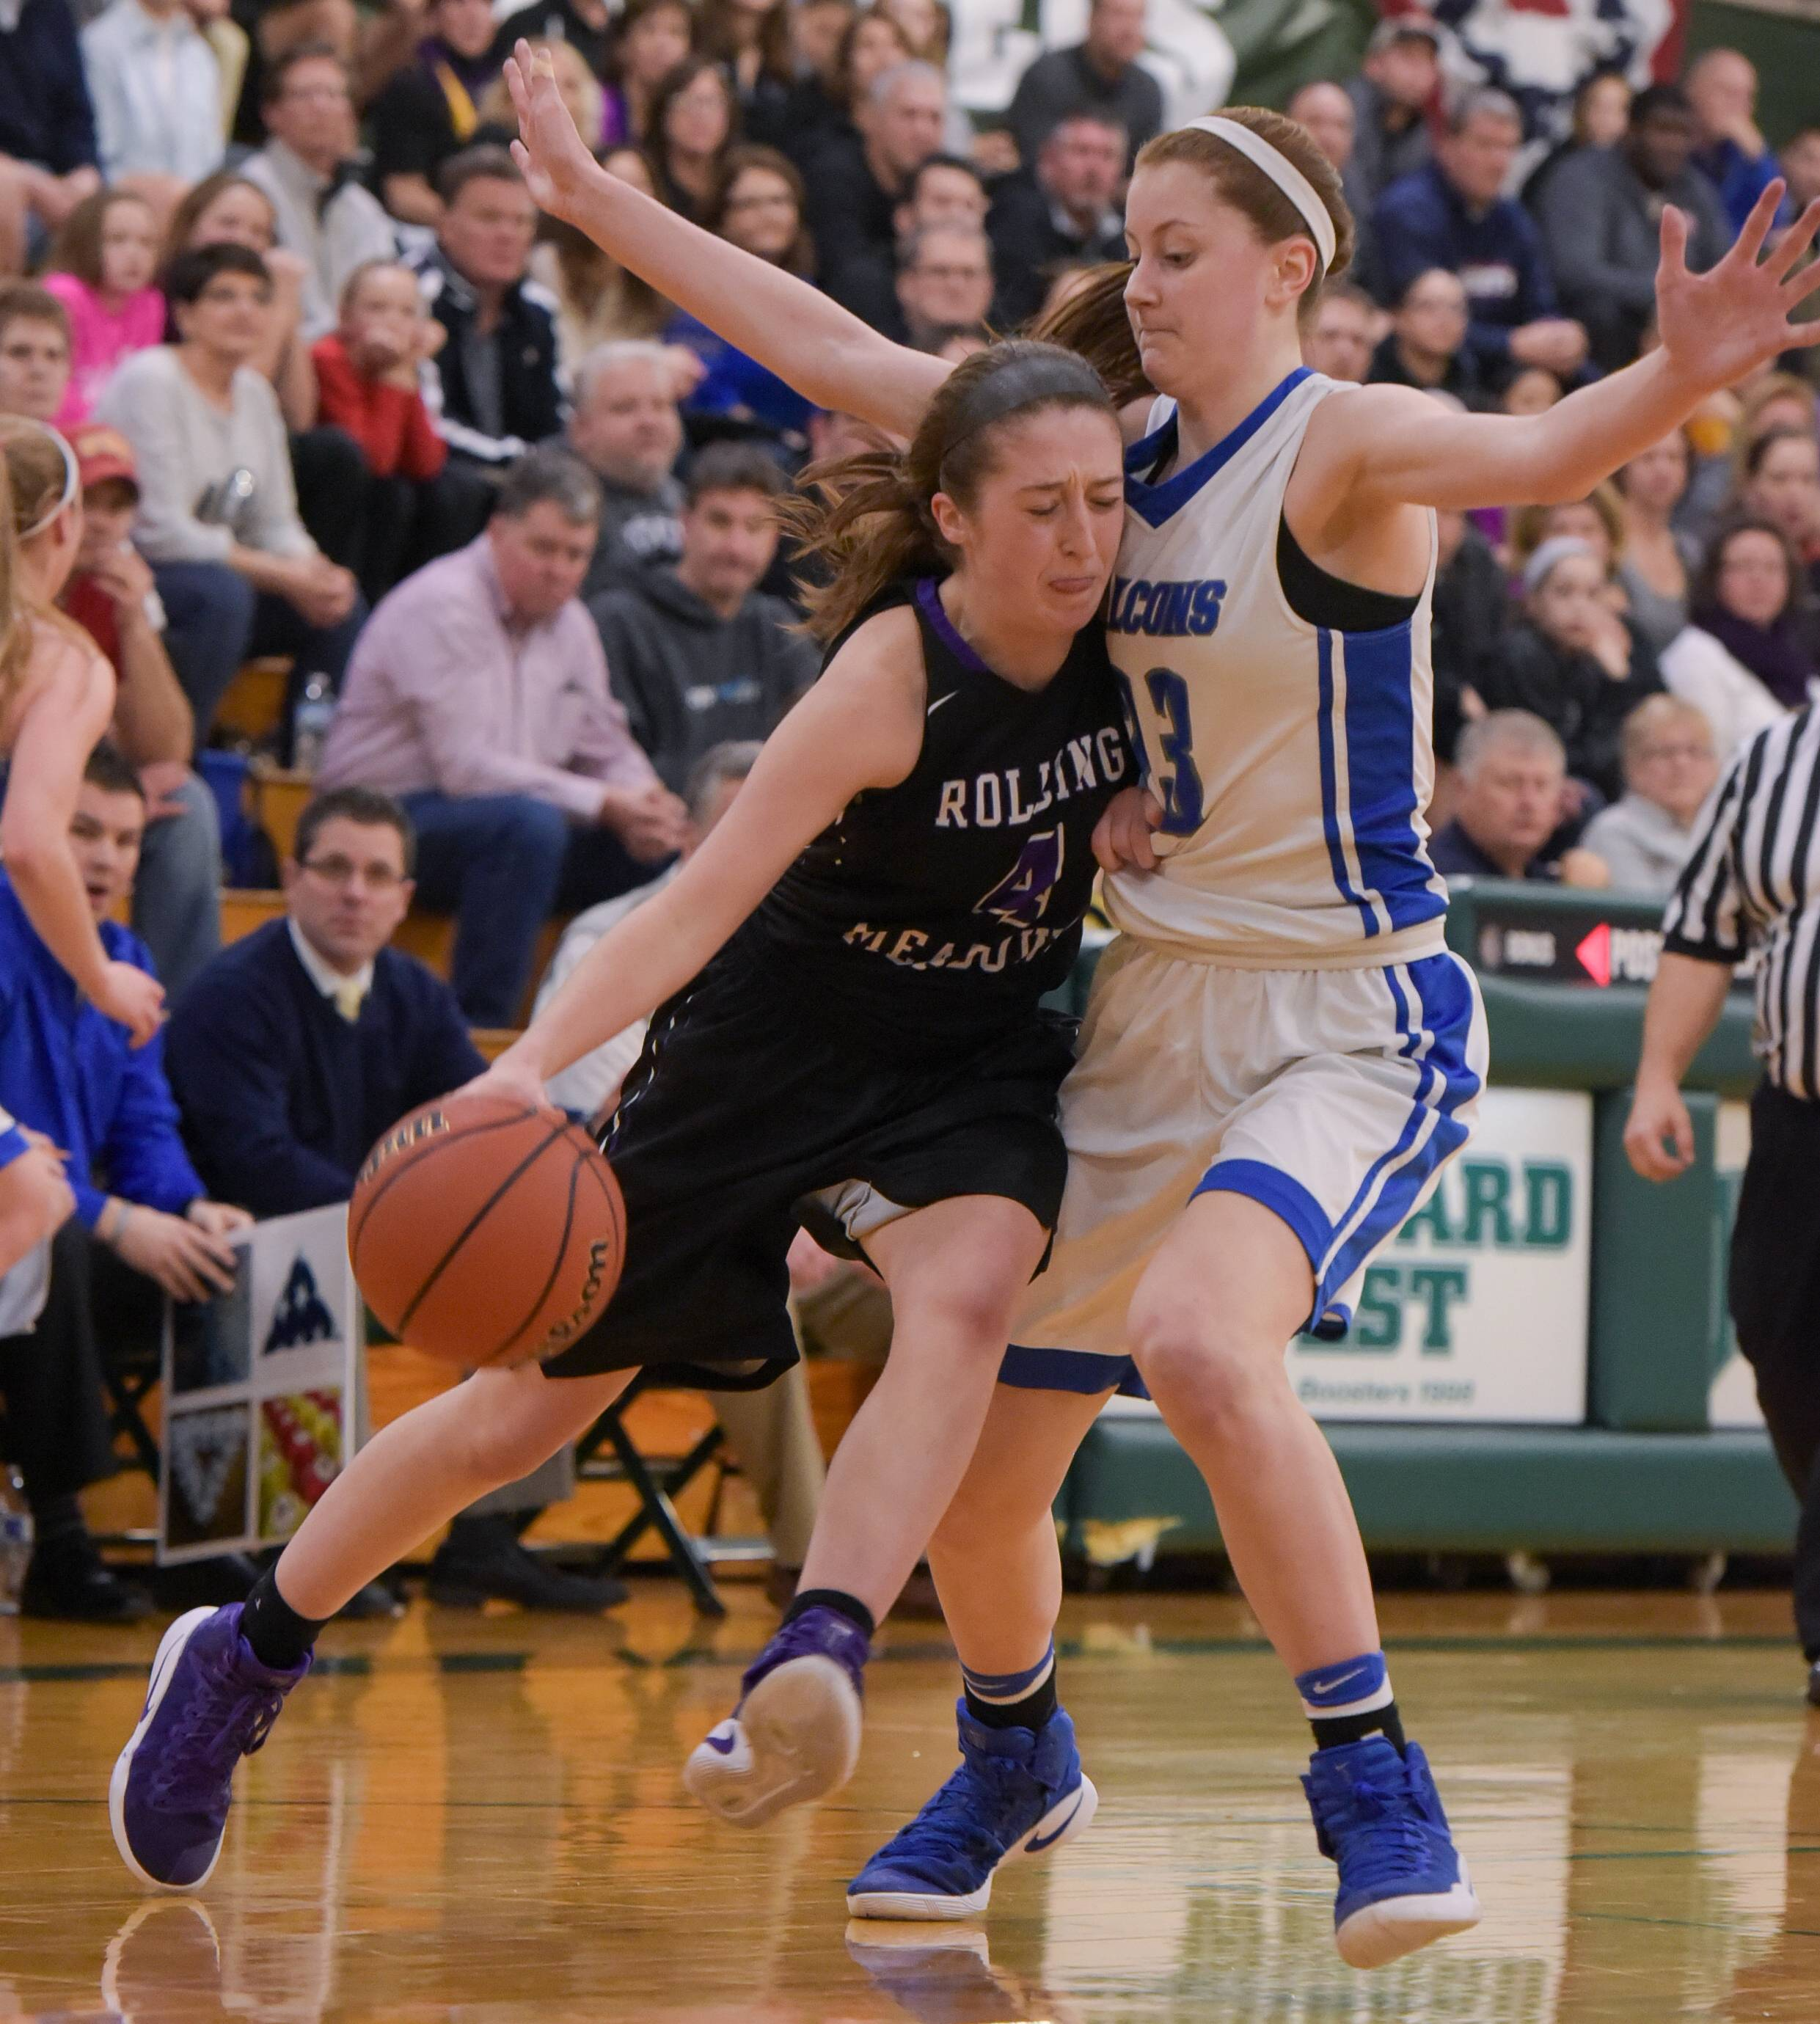 Rolling Meadows' Melissa Spiwak draw contact from Wheaton North's Nikki Baird during the Mustangs' overtime victory on Monday in Class 4A sectional semifinal play at Glenbard West.